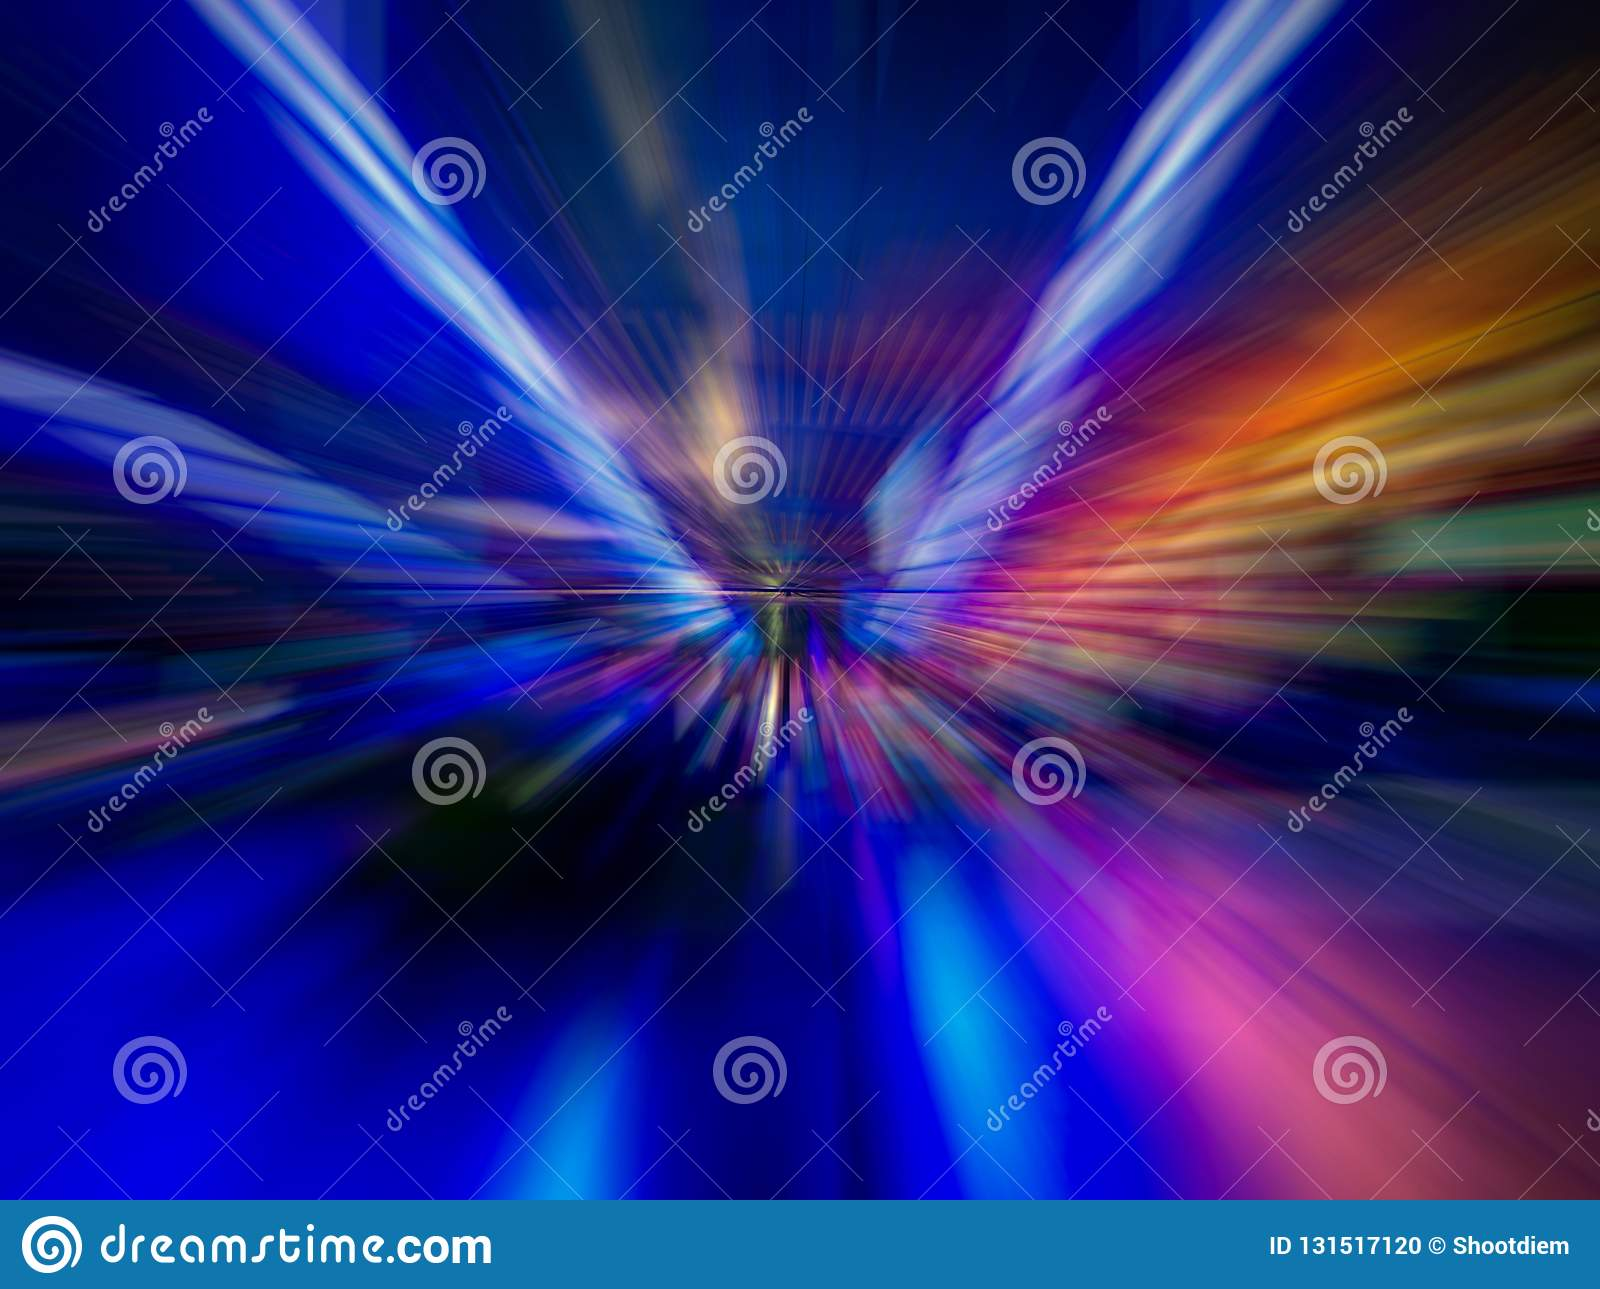 Colorful abstract lines background. Abstract smooth lines